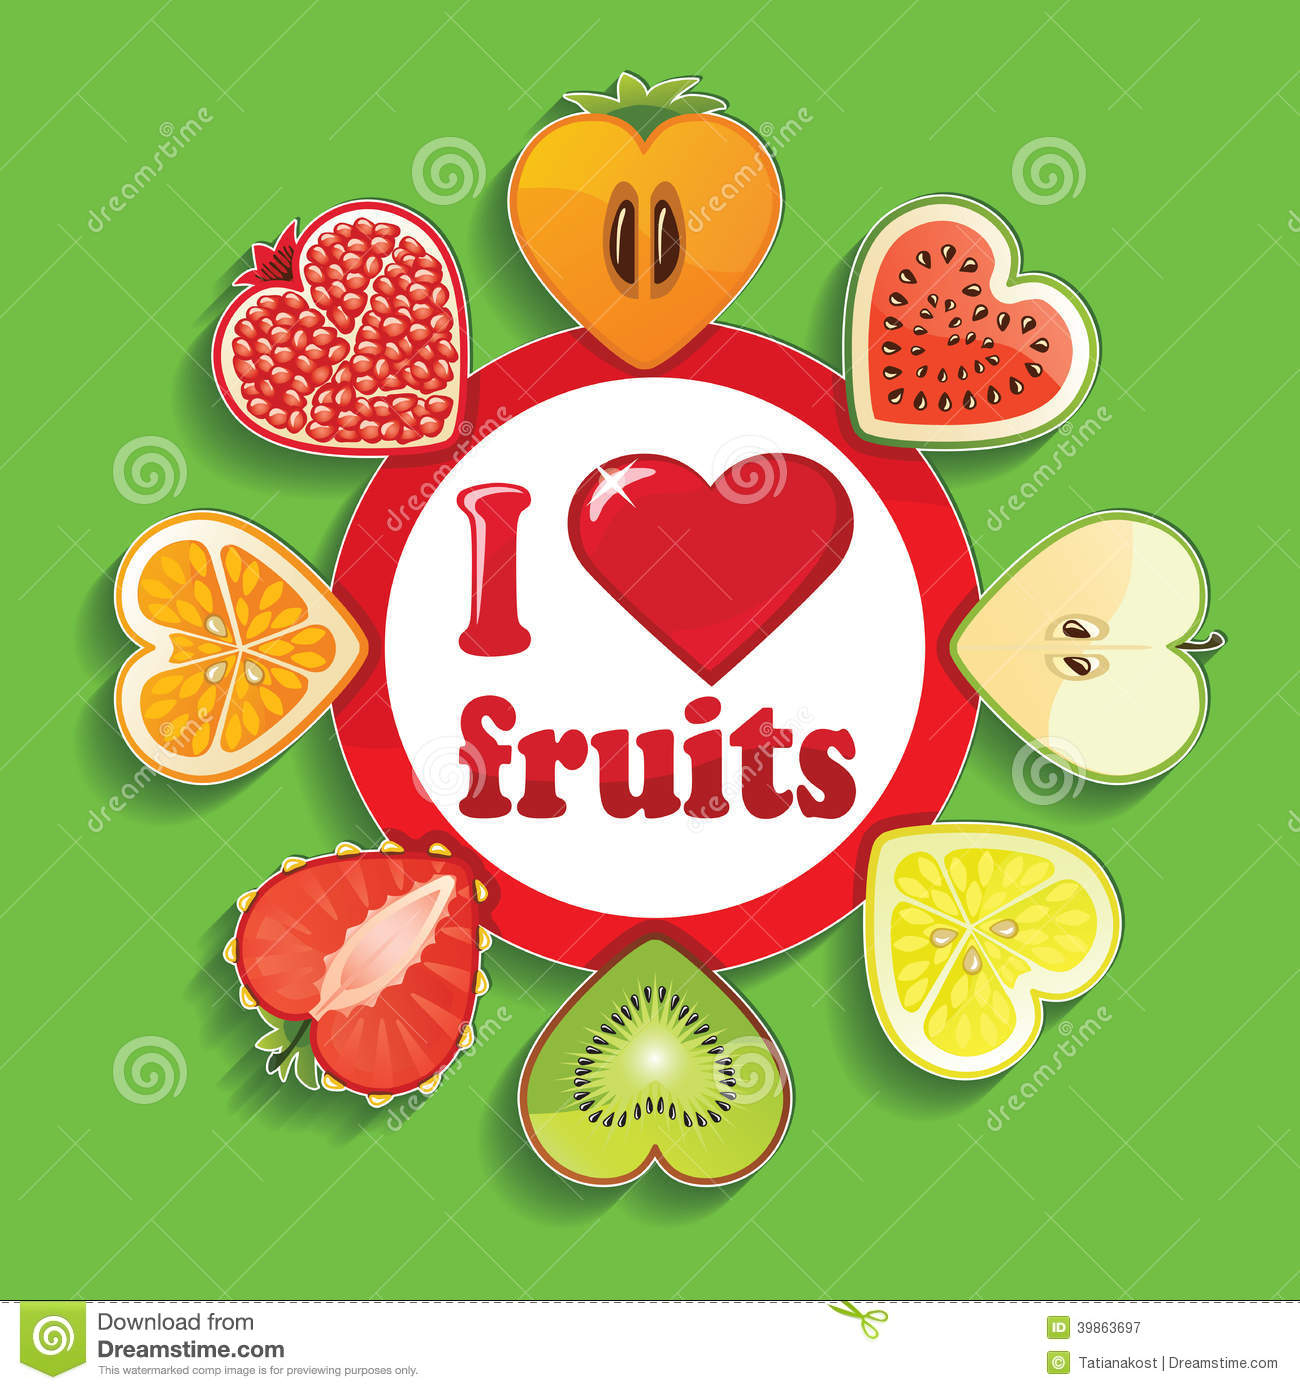 Cut Of Fruits And Berries In Sign I Love Fruits Stock. Hotel Floor Signs Of Stroke. Iso Signs Of Stroke. Everyday Signs. Group G Signs. Bottled Water Signs. Smooth Signs Of Stroke. Anime Girl Signs. College Gameday Signs